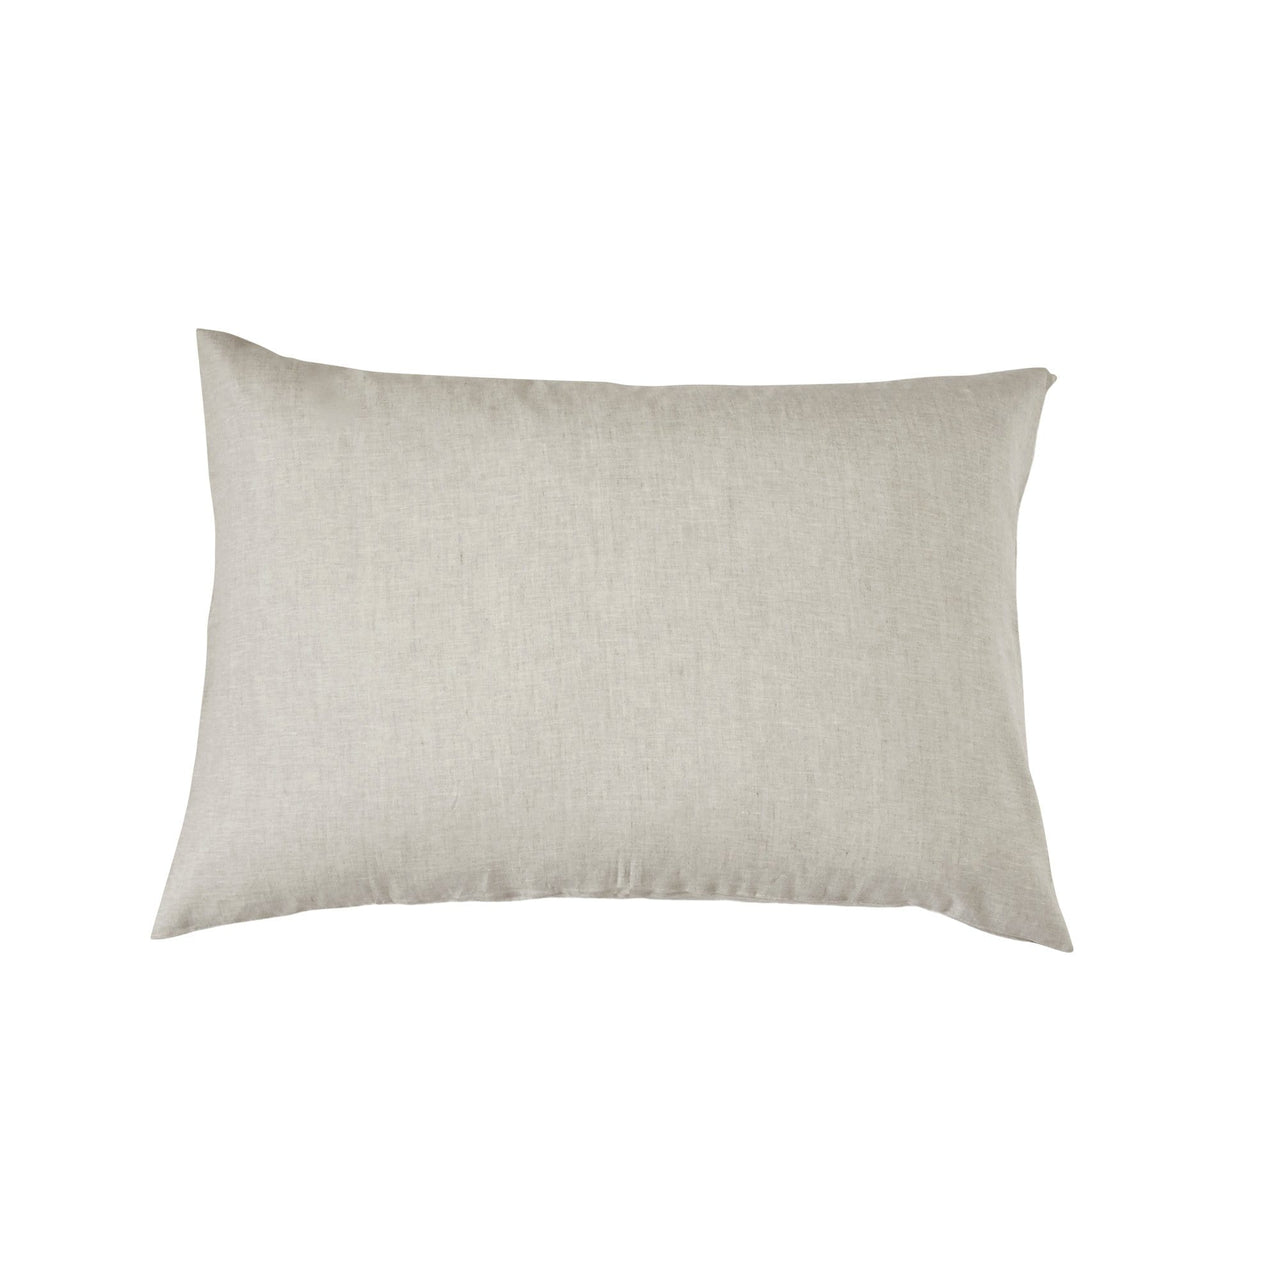 Modernplum Bedding Anna Big Linen Headboard Cushion